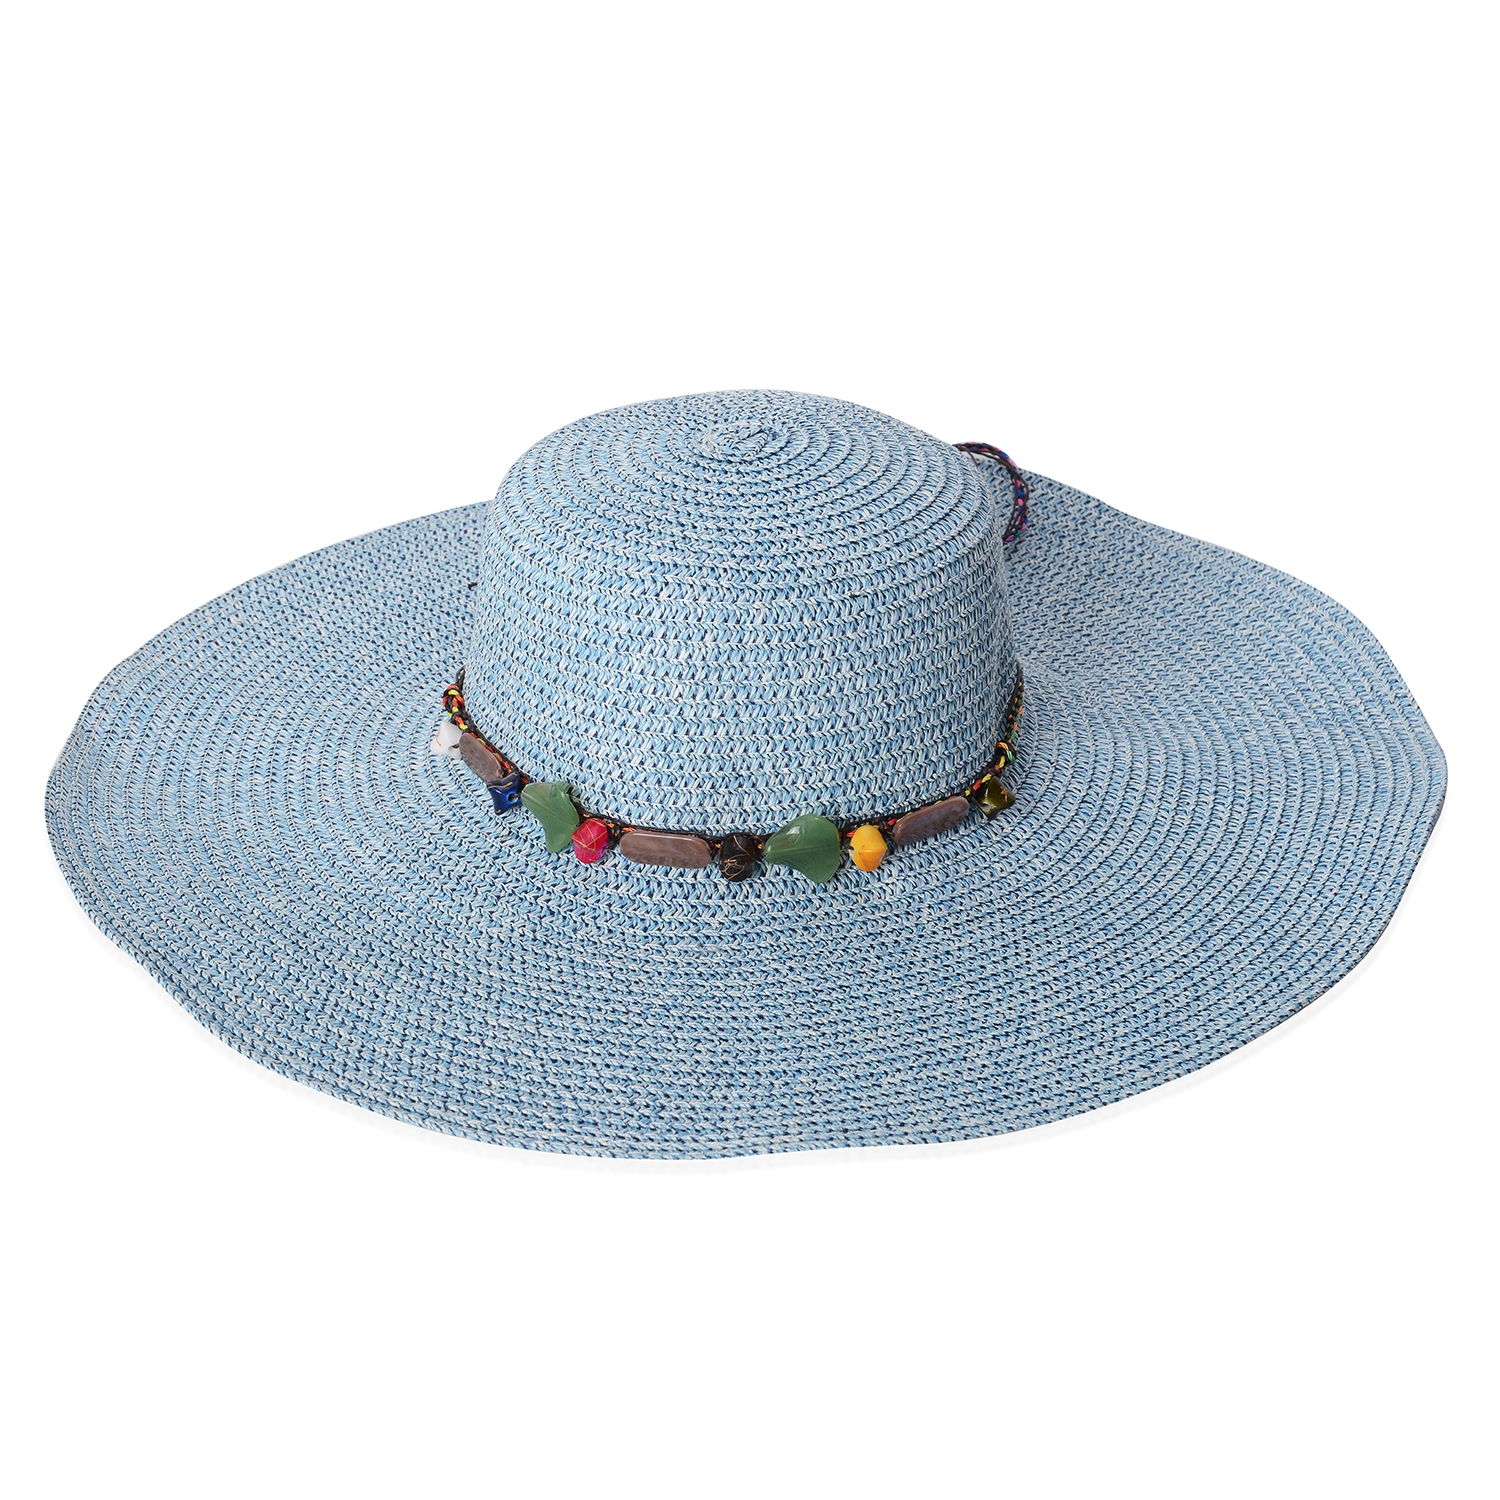 9860bfad9d4 Blue 100% Straw Paper Beaded String Floppy Hat (One Size) ...